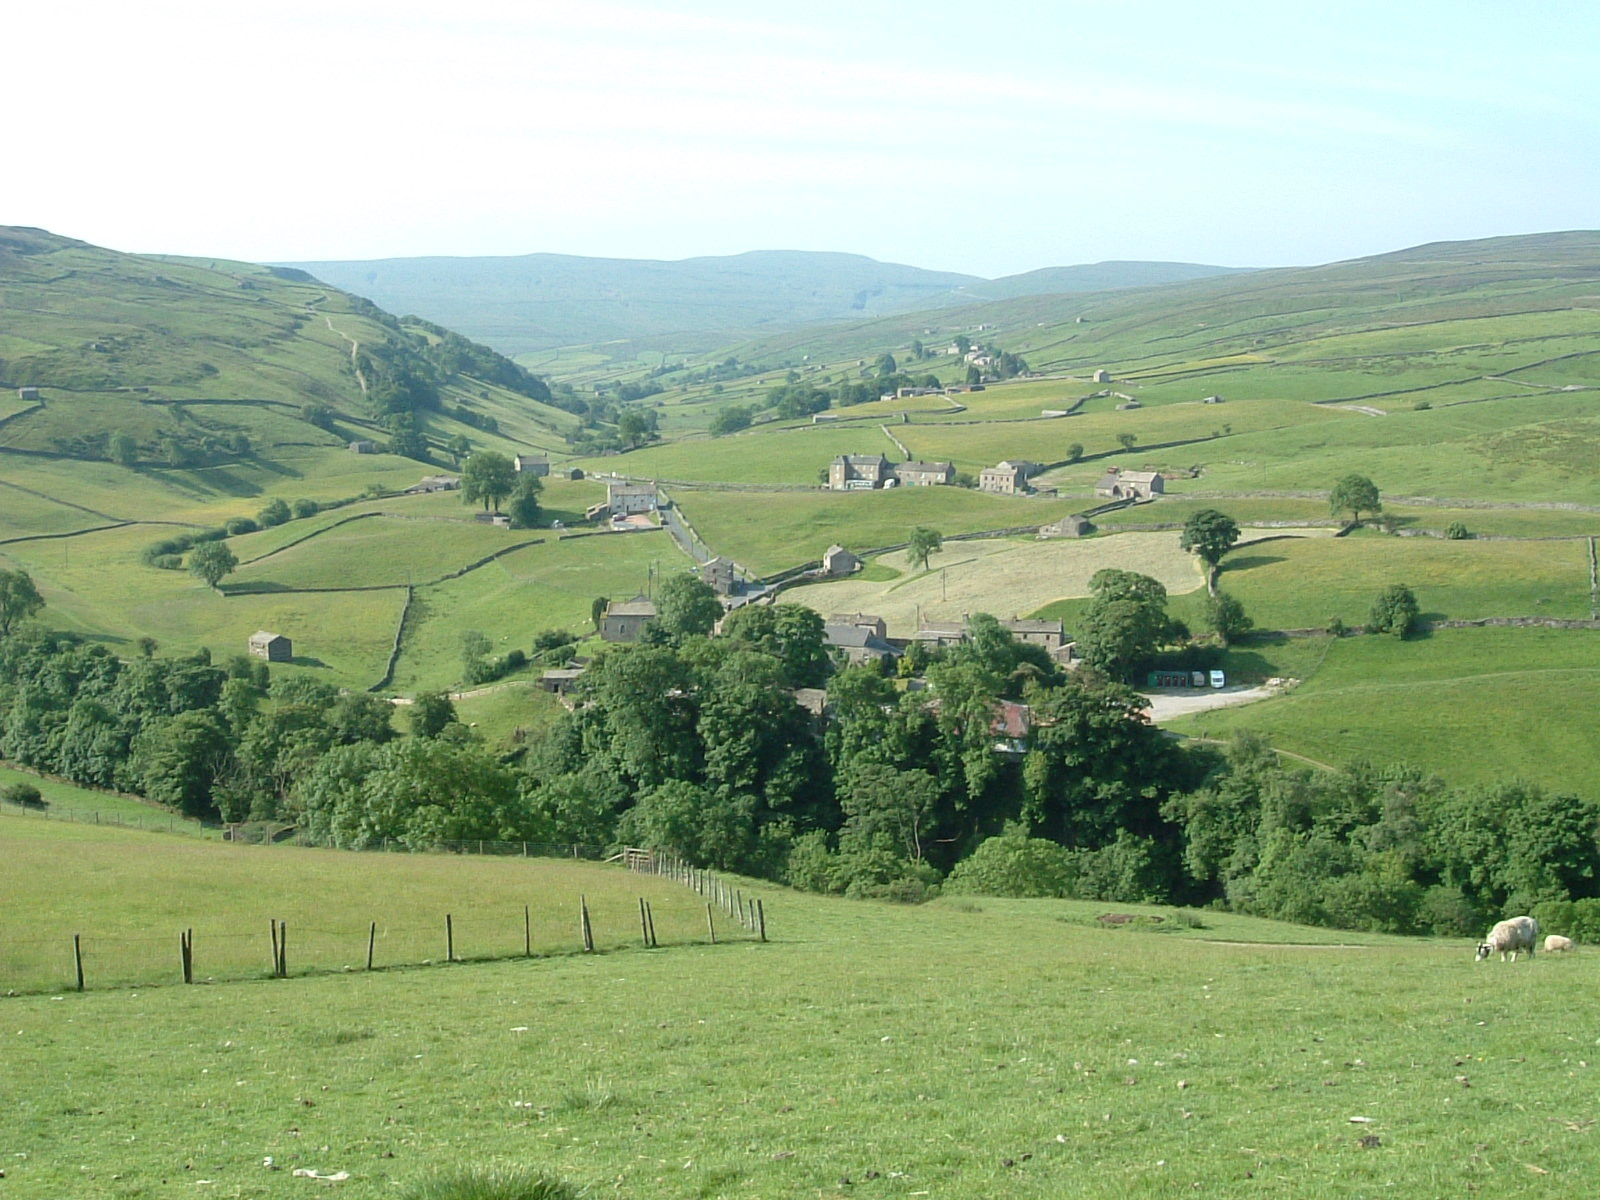 Looking back towards Keld